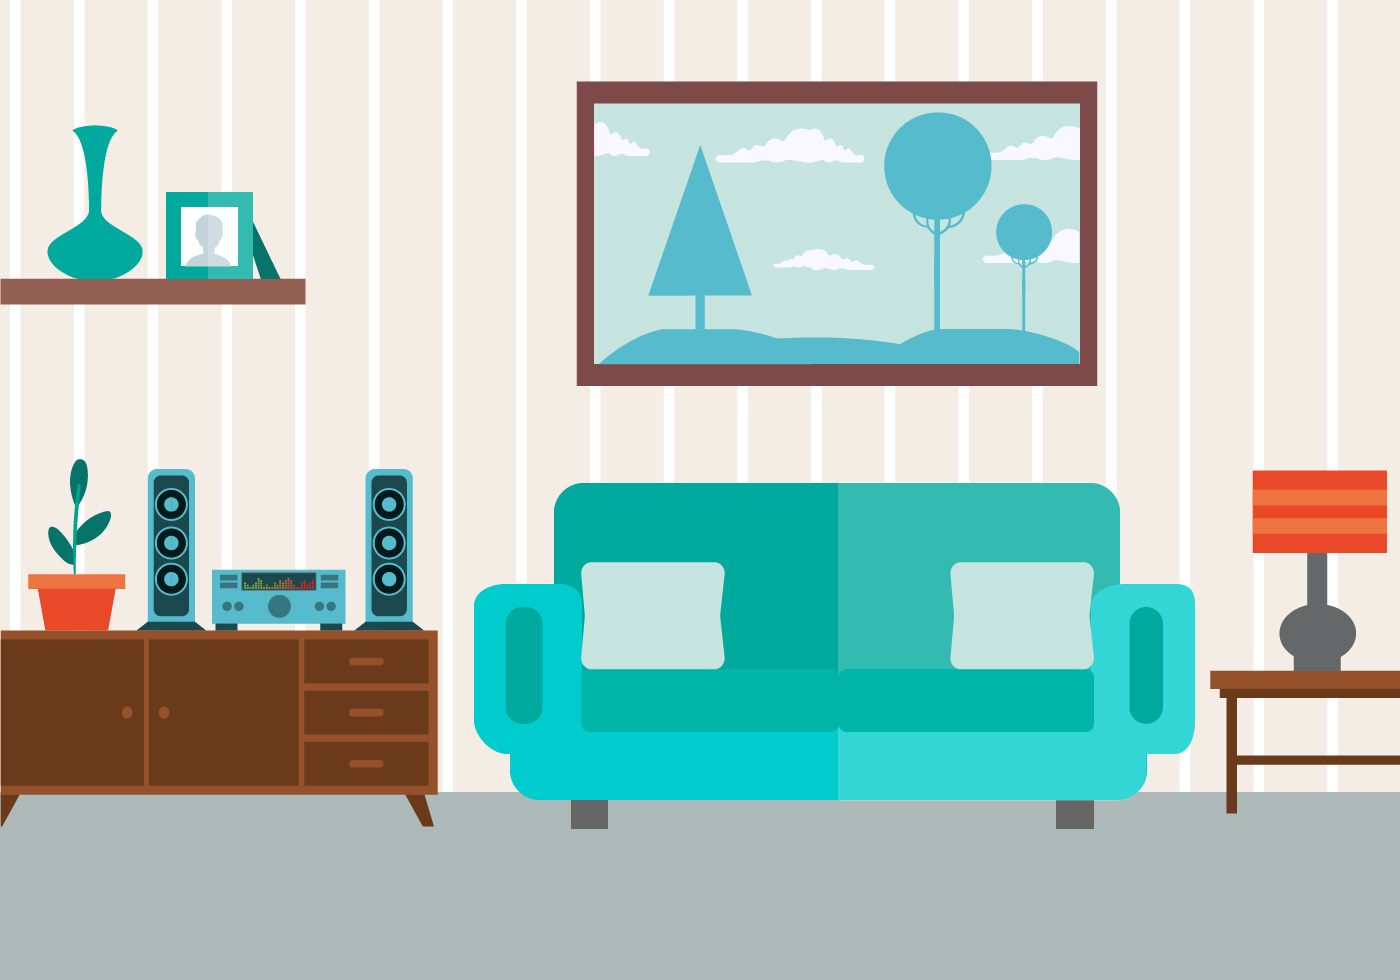 Free vector livingroom download free vector art stock for Sala de estar animada